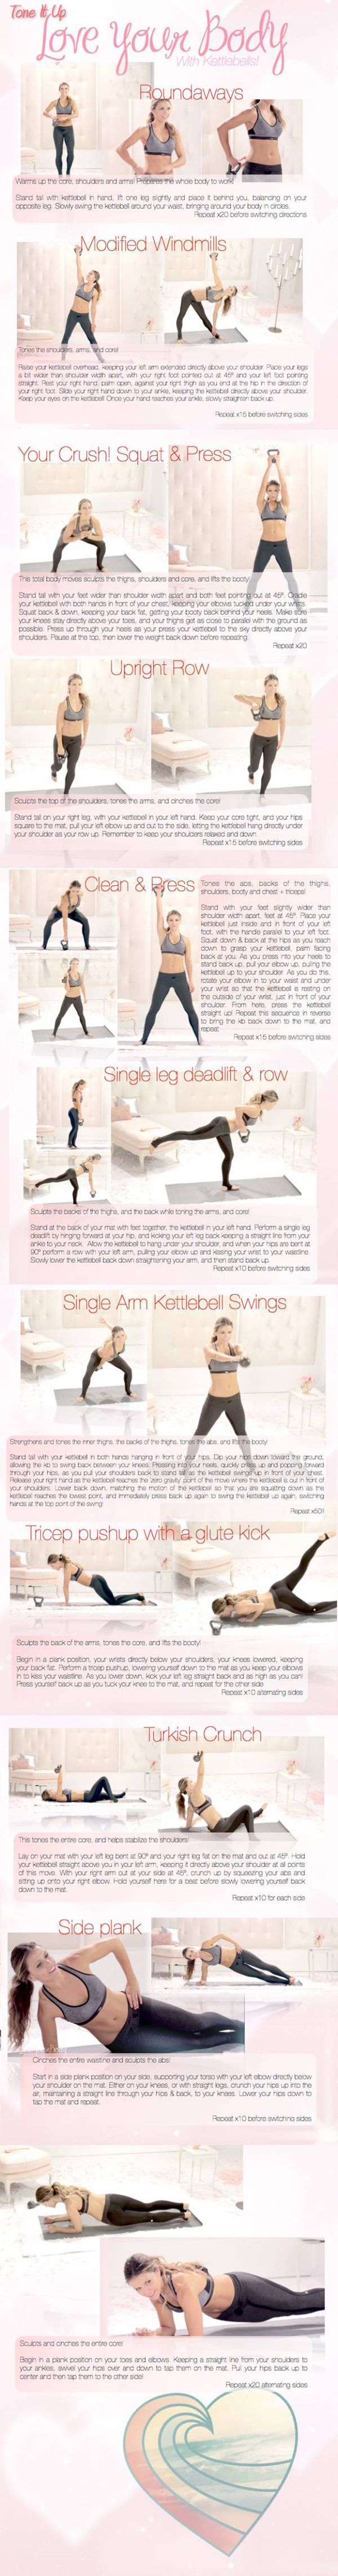 NOTE from TeamMona: I love multi-tasking Kettlebells! Click on image for complete workout. Most of this workout can also be done with regular hand weights. Just ask me how. :-) LYB-Kettlebell-katrina-tone-it-up-toned-up-printable-jpg